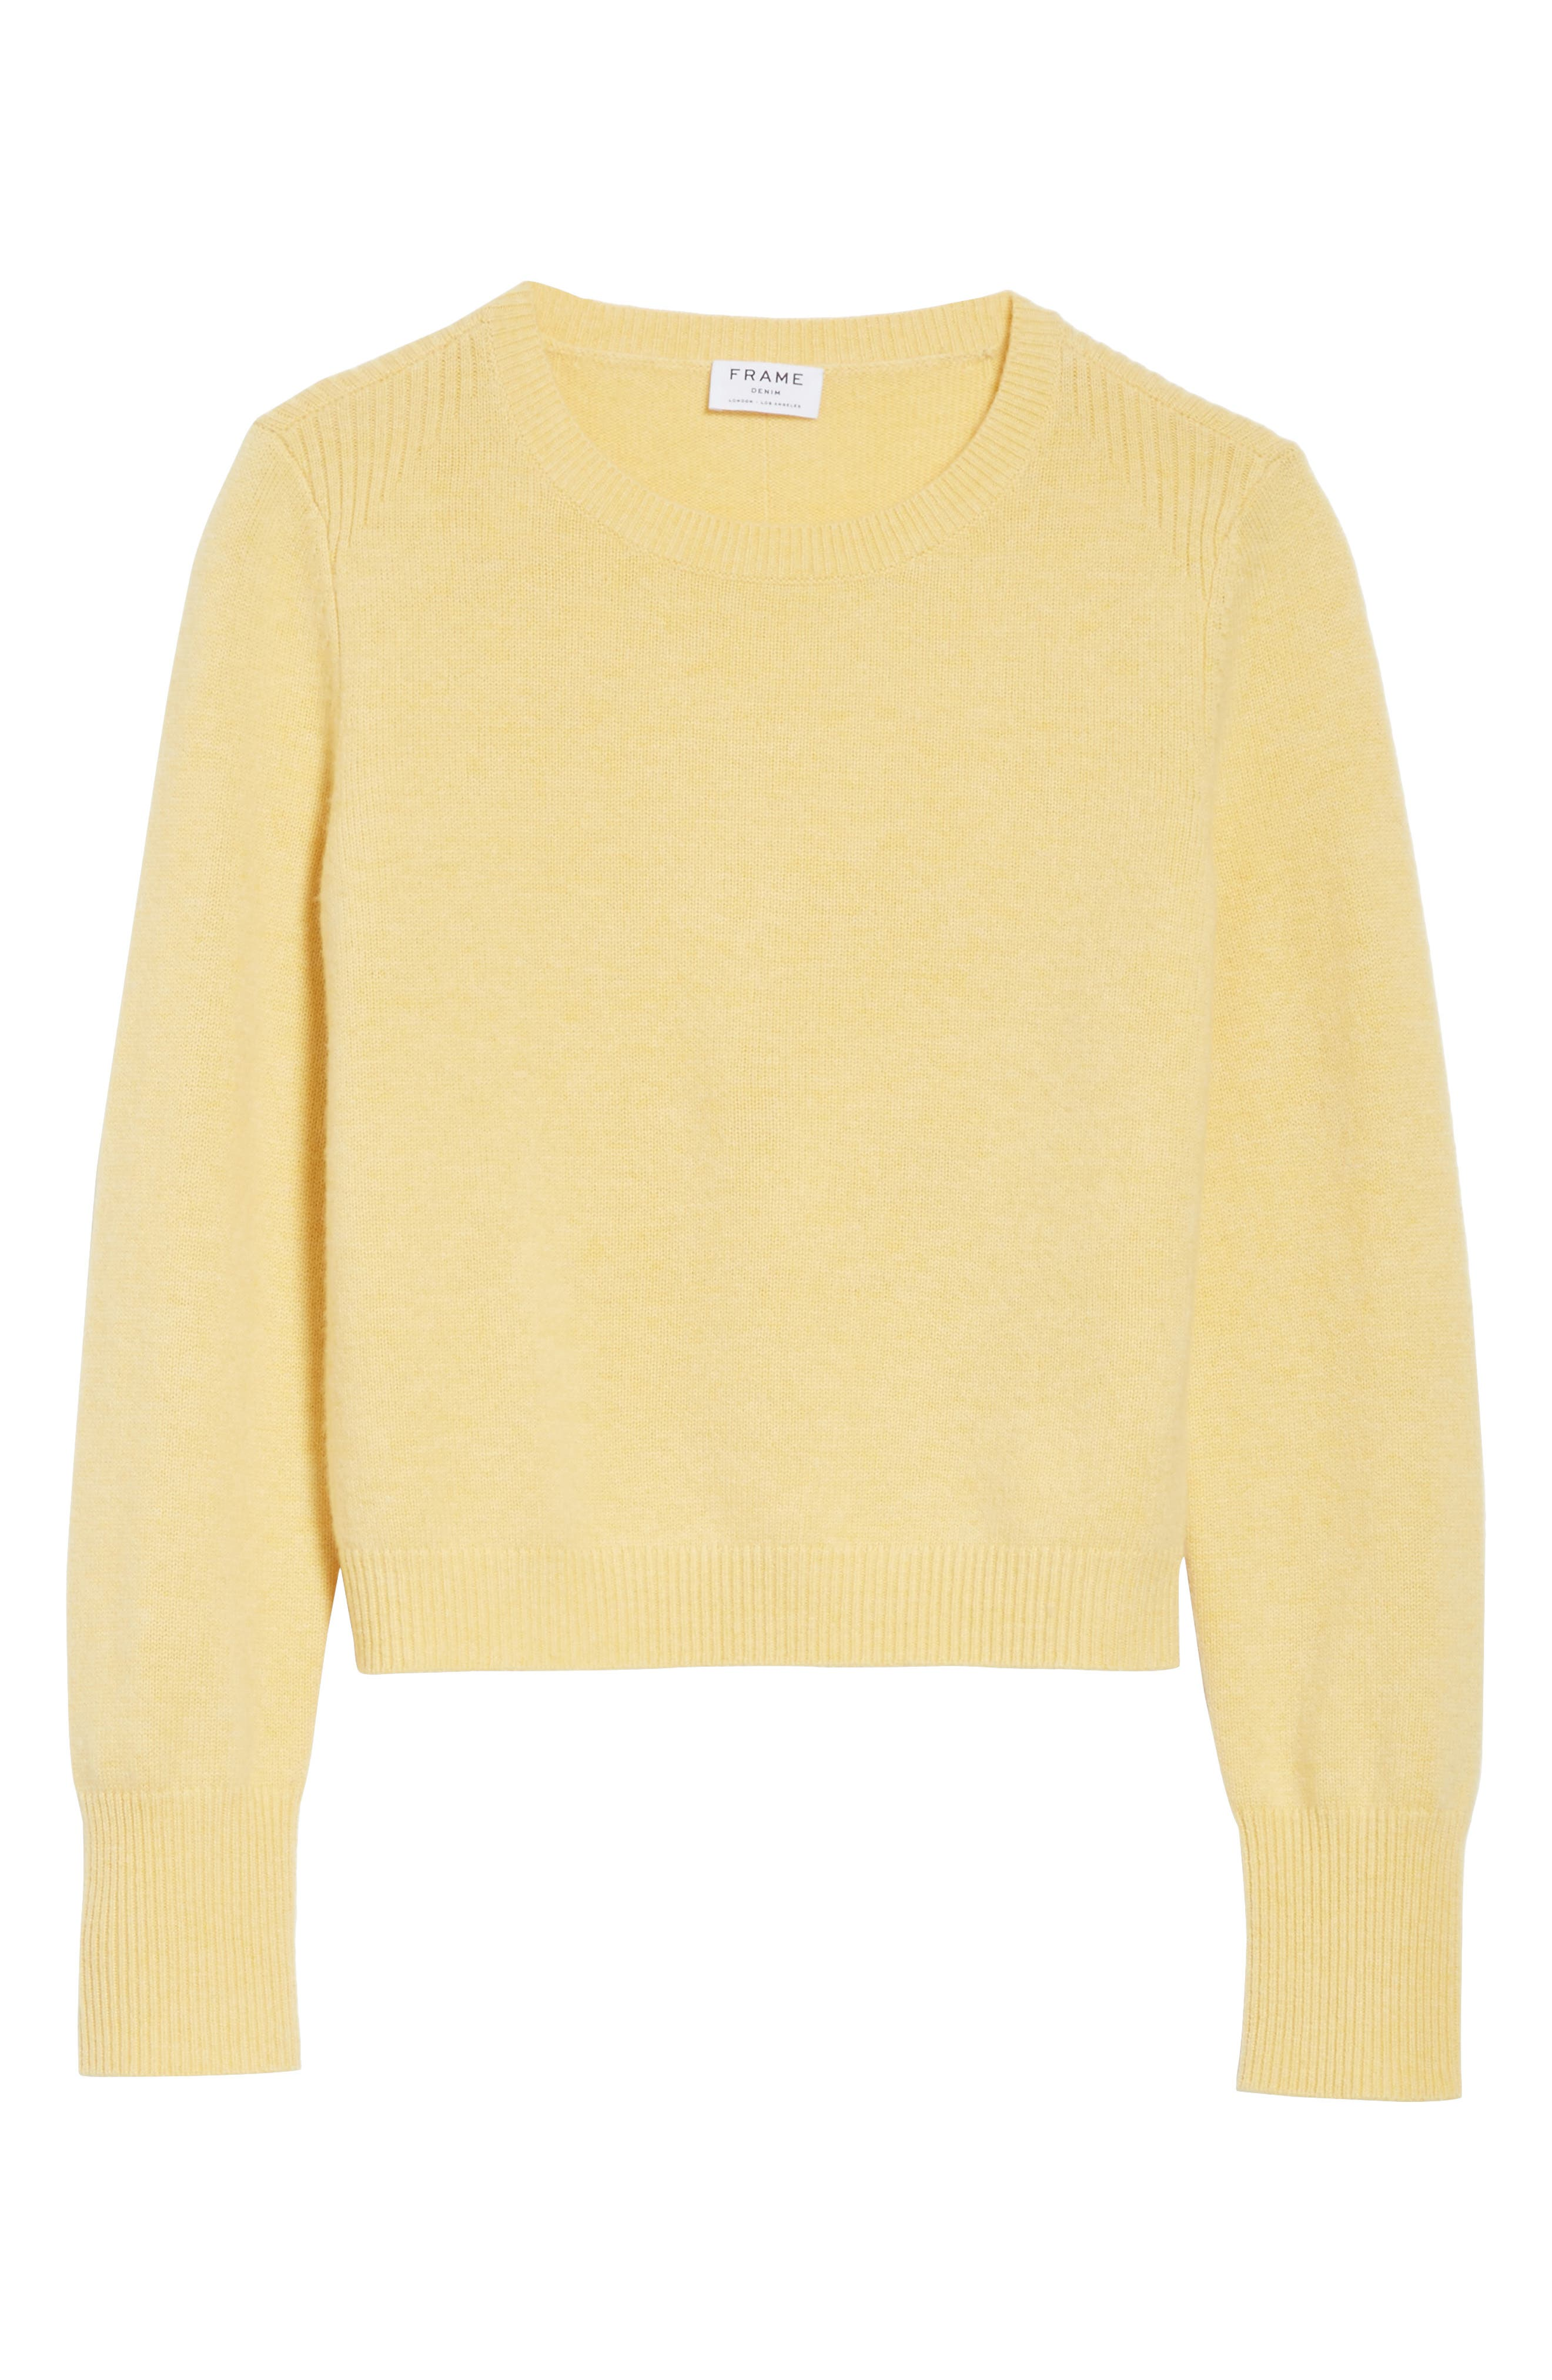 Wool & Cashmere Sweater,                             Alternate thumbnail 6, color,